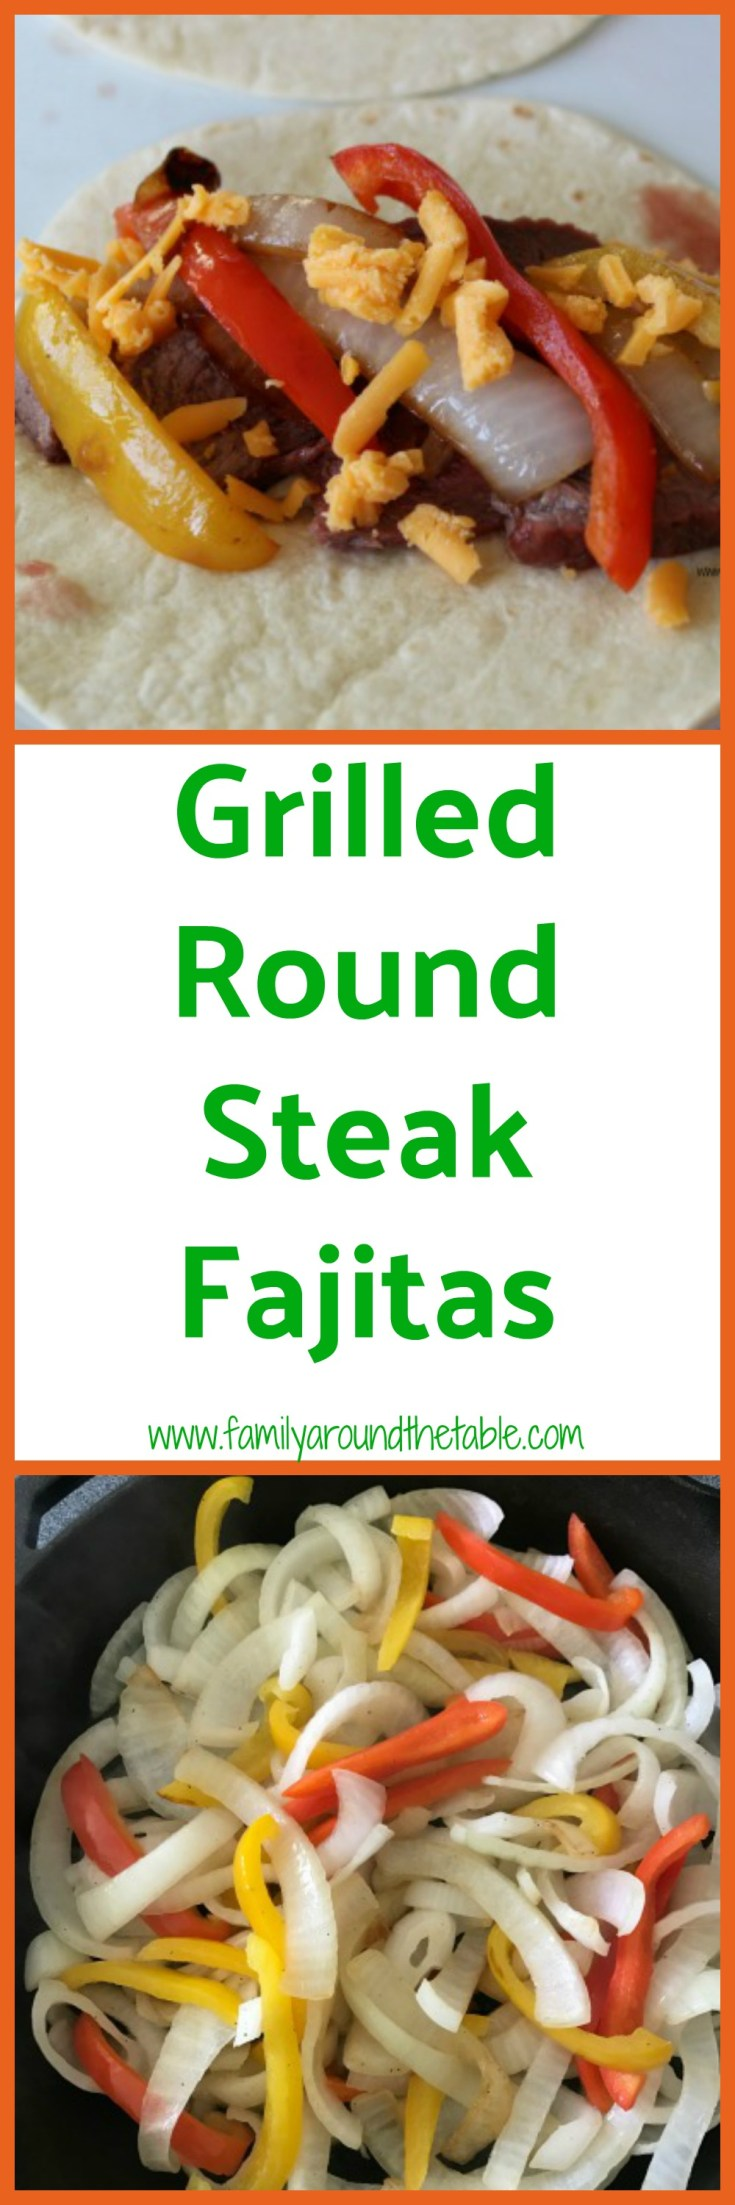 It's easy to make steak fajitas at home!